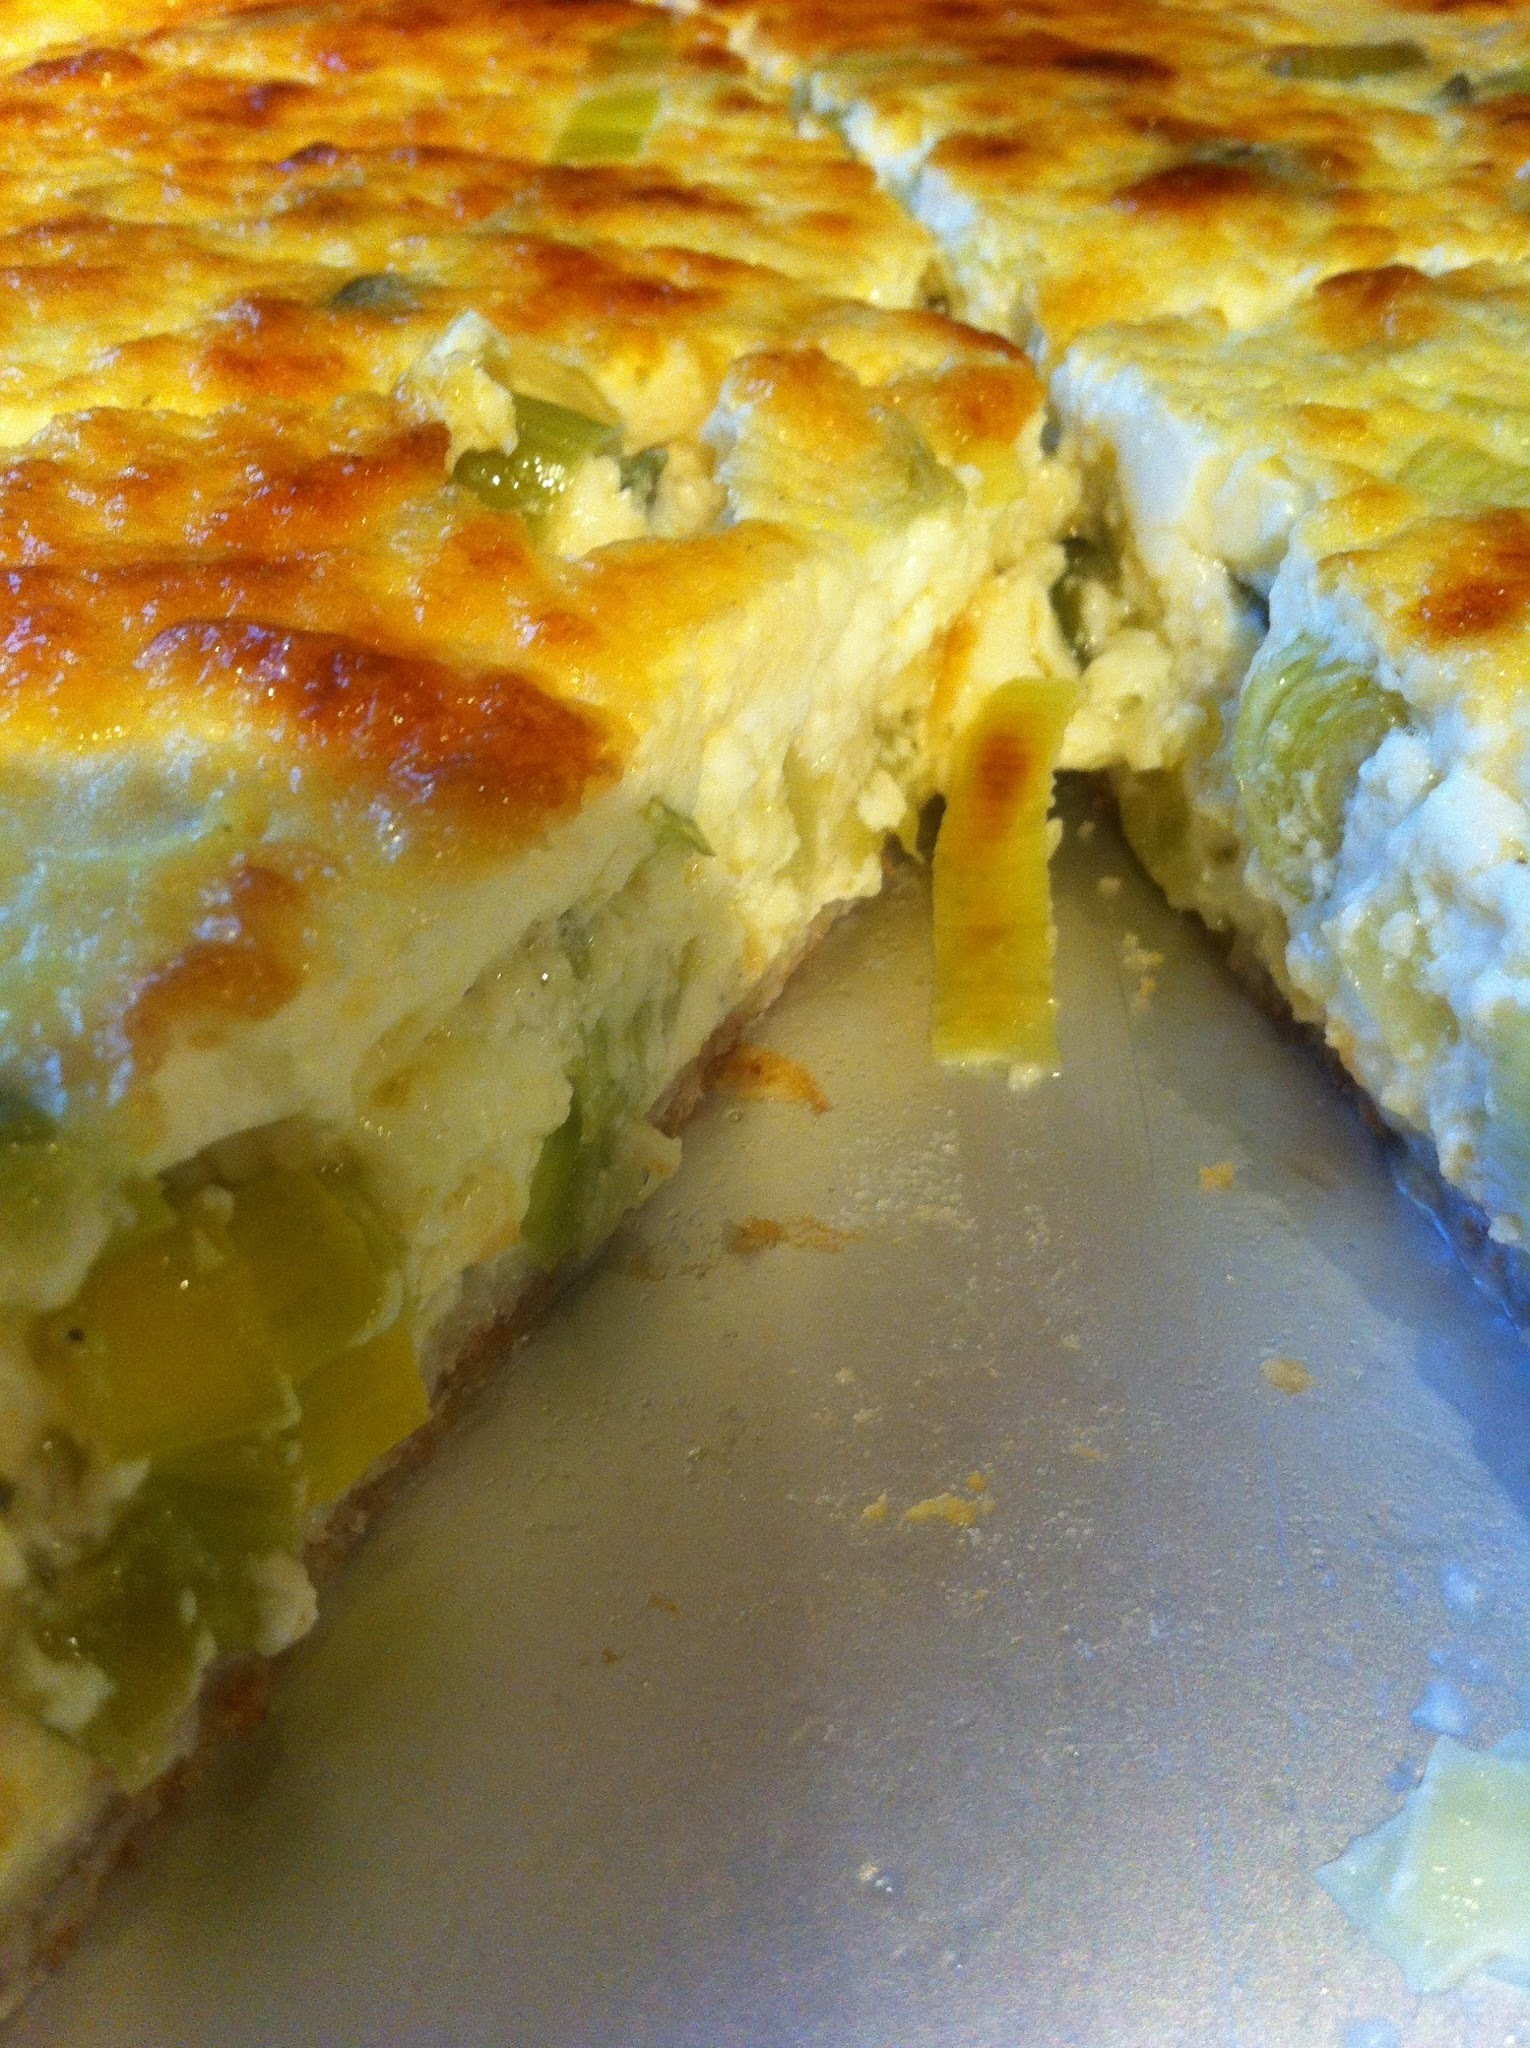 Welsh leek and cheese quiche